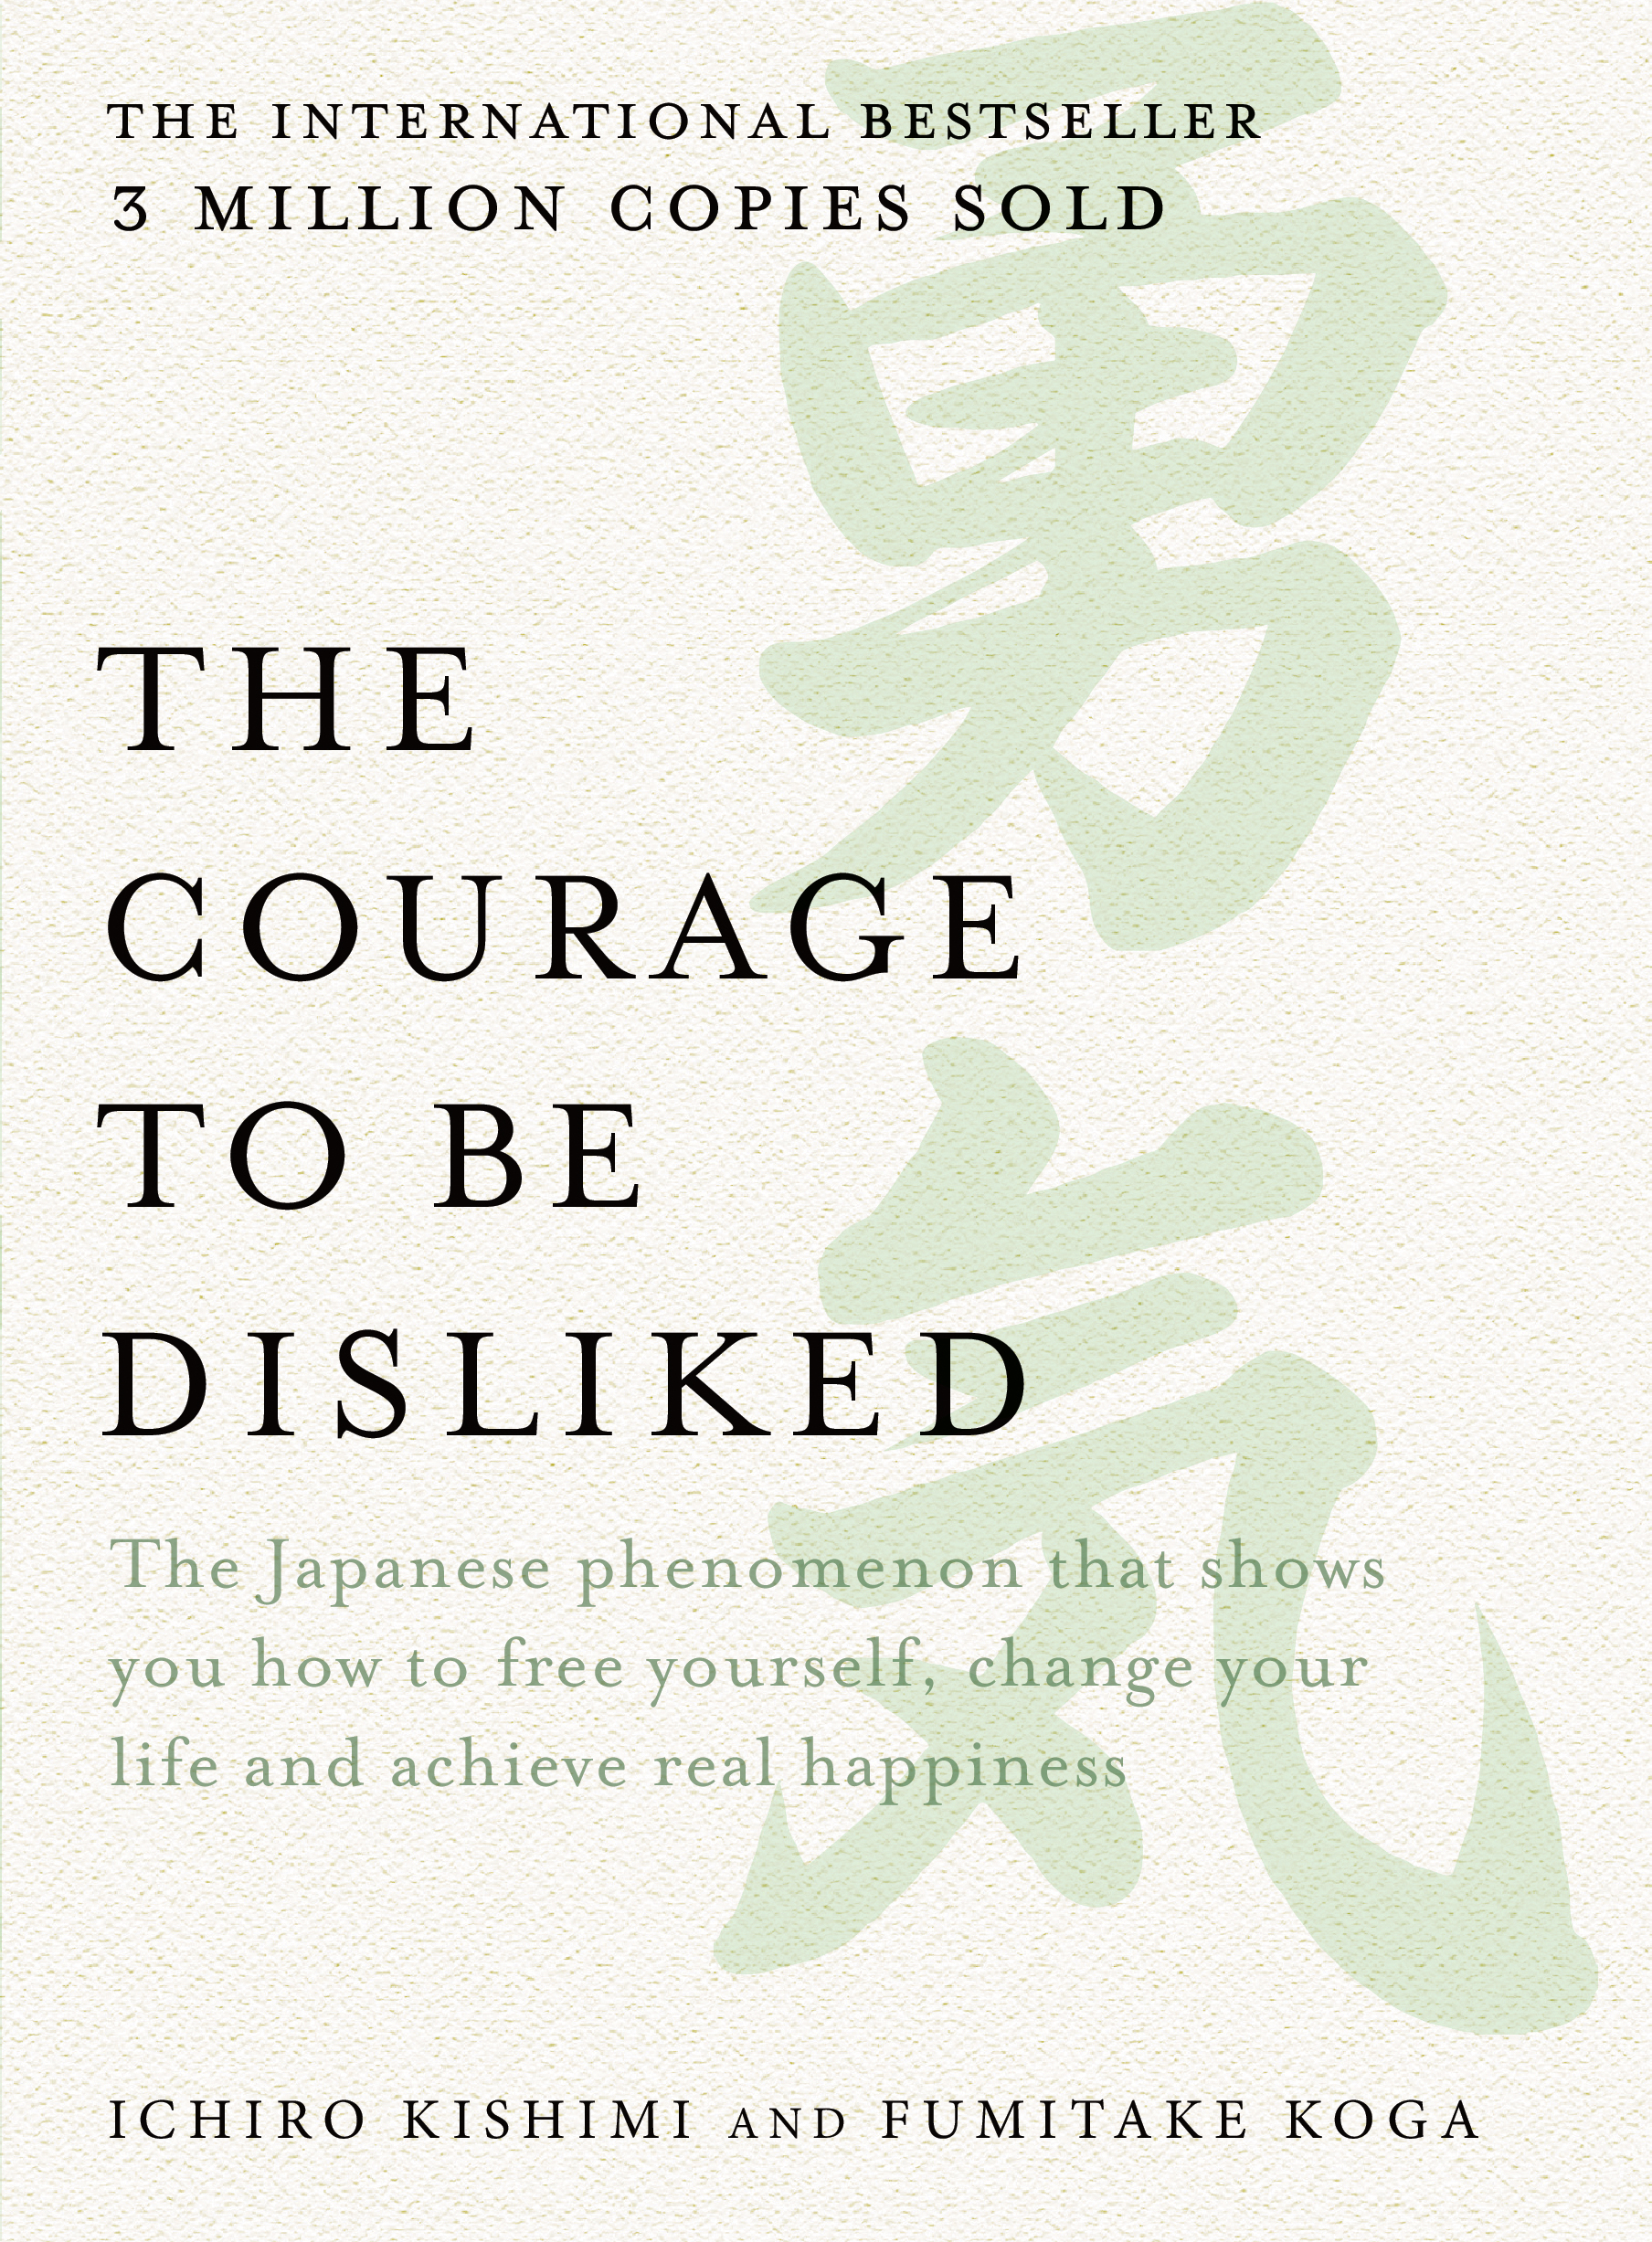 The Courage to be DislikedThe Japanese phenomenon that shows you how to f... by Ichiro Kishimi,Fumitake Koga, ISBN: 9781760630492